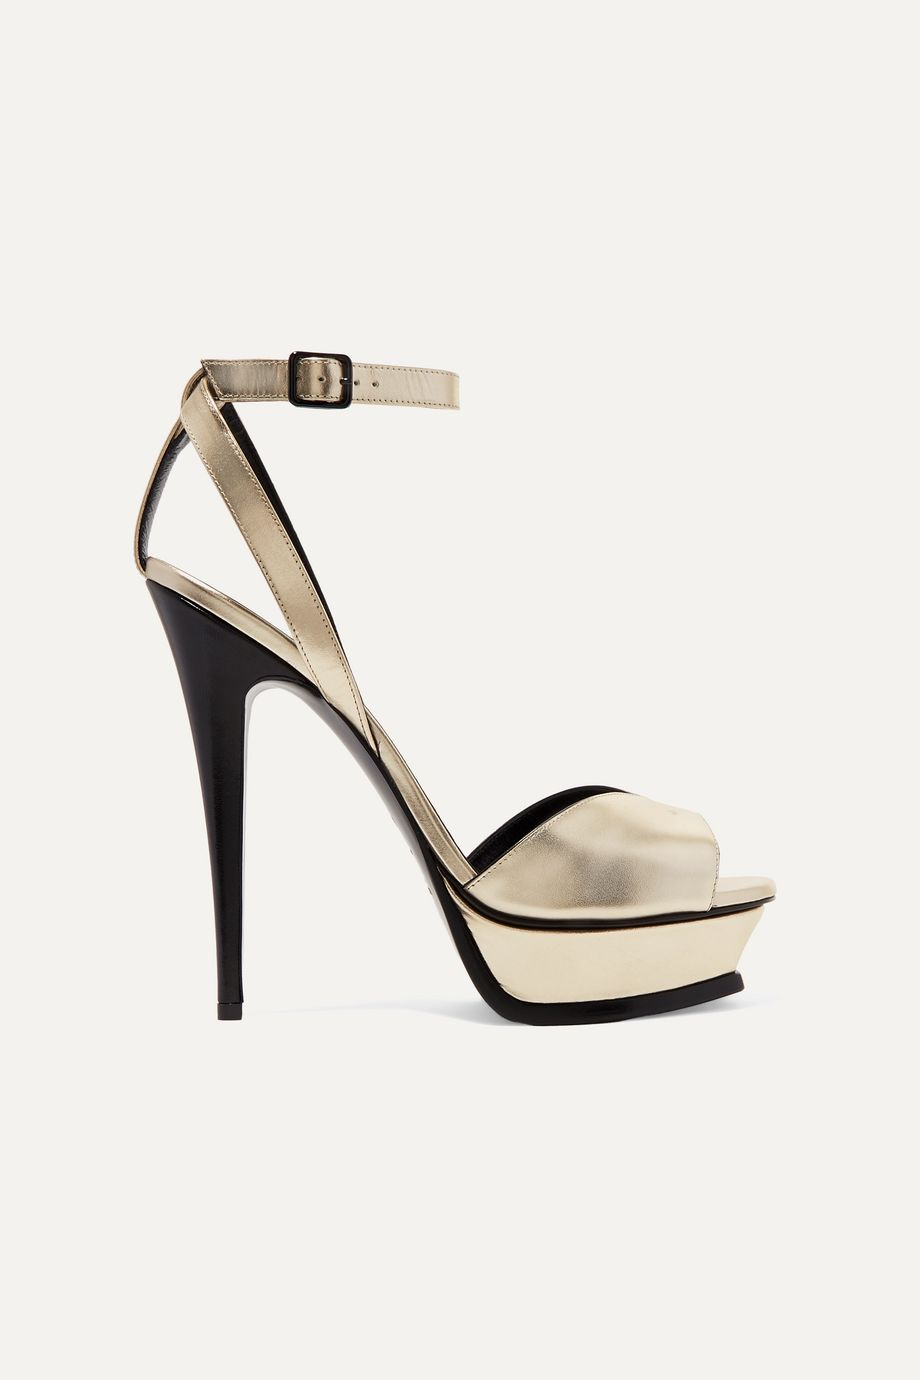 SAINT LAURENT Tribute metallic leather platform sandals